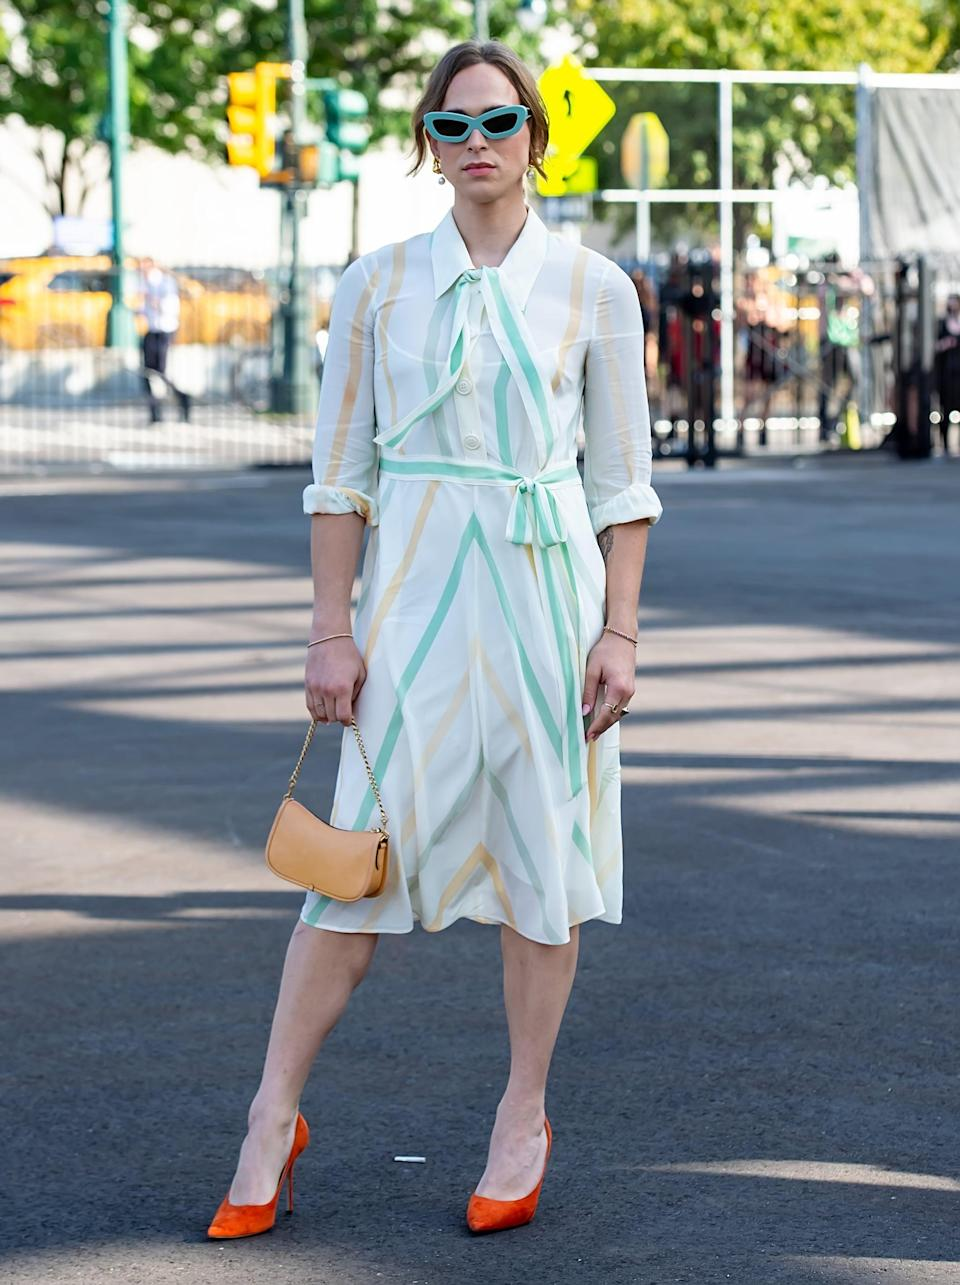 <p>She styled a striped dress with bright orange heels, a tan handbag, and turquoise sunglasses.</p>